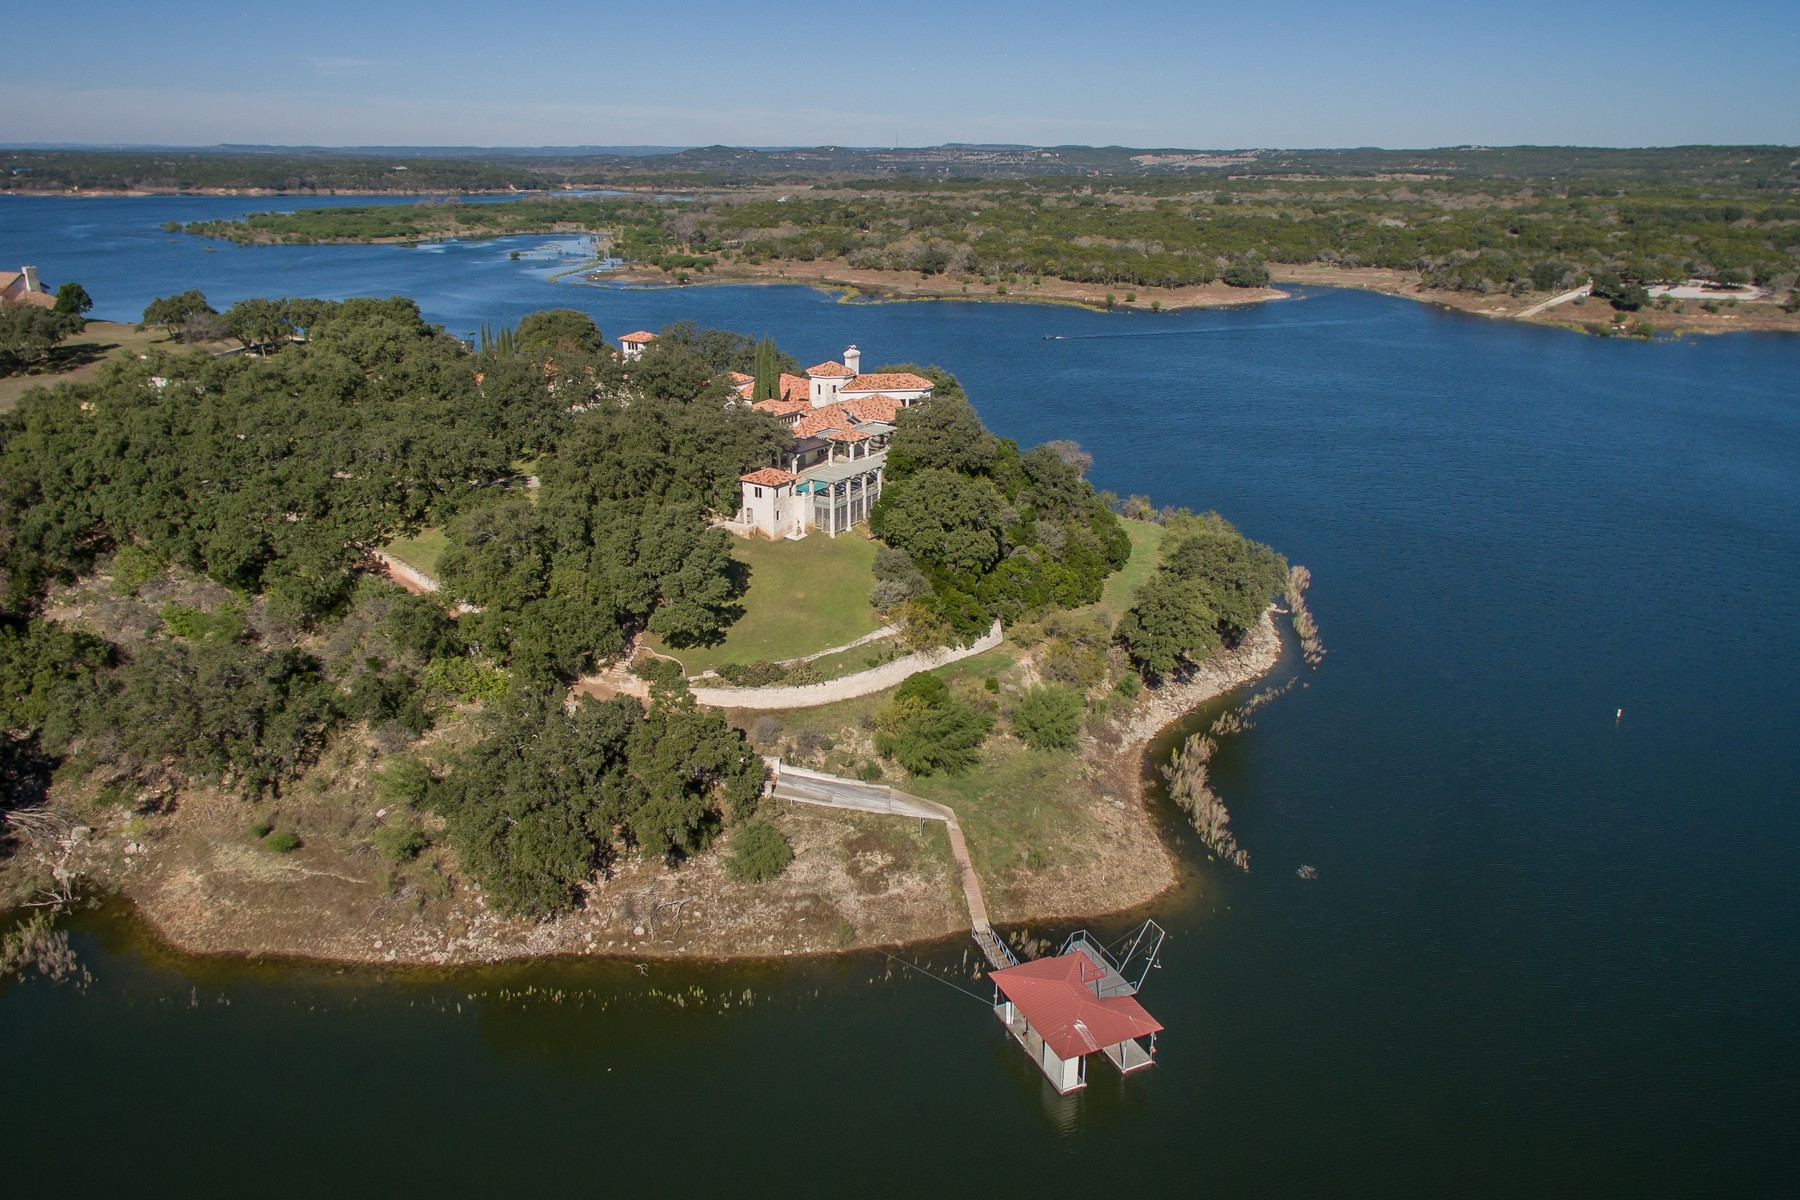 Maison unifamiliale pour l Vente à Gated Estate on Lake Travis Peninsula 26100 Countryside Dr Spicewood, Texas, 78669 États-Unis